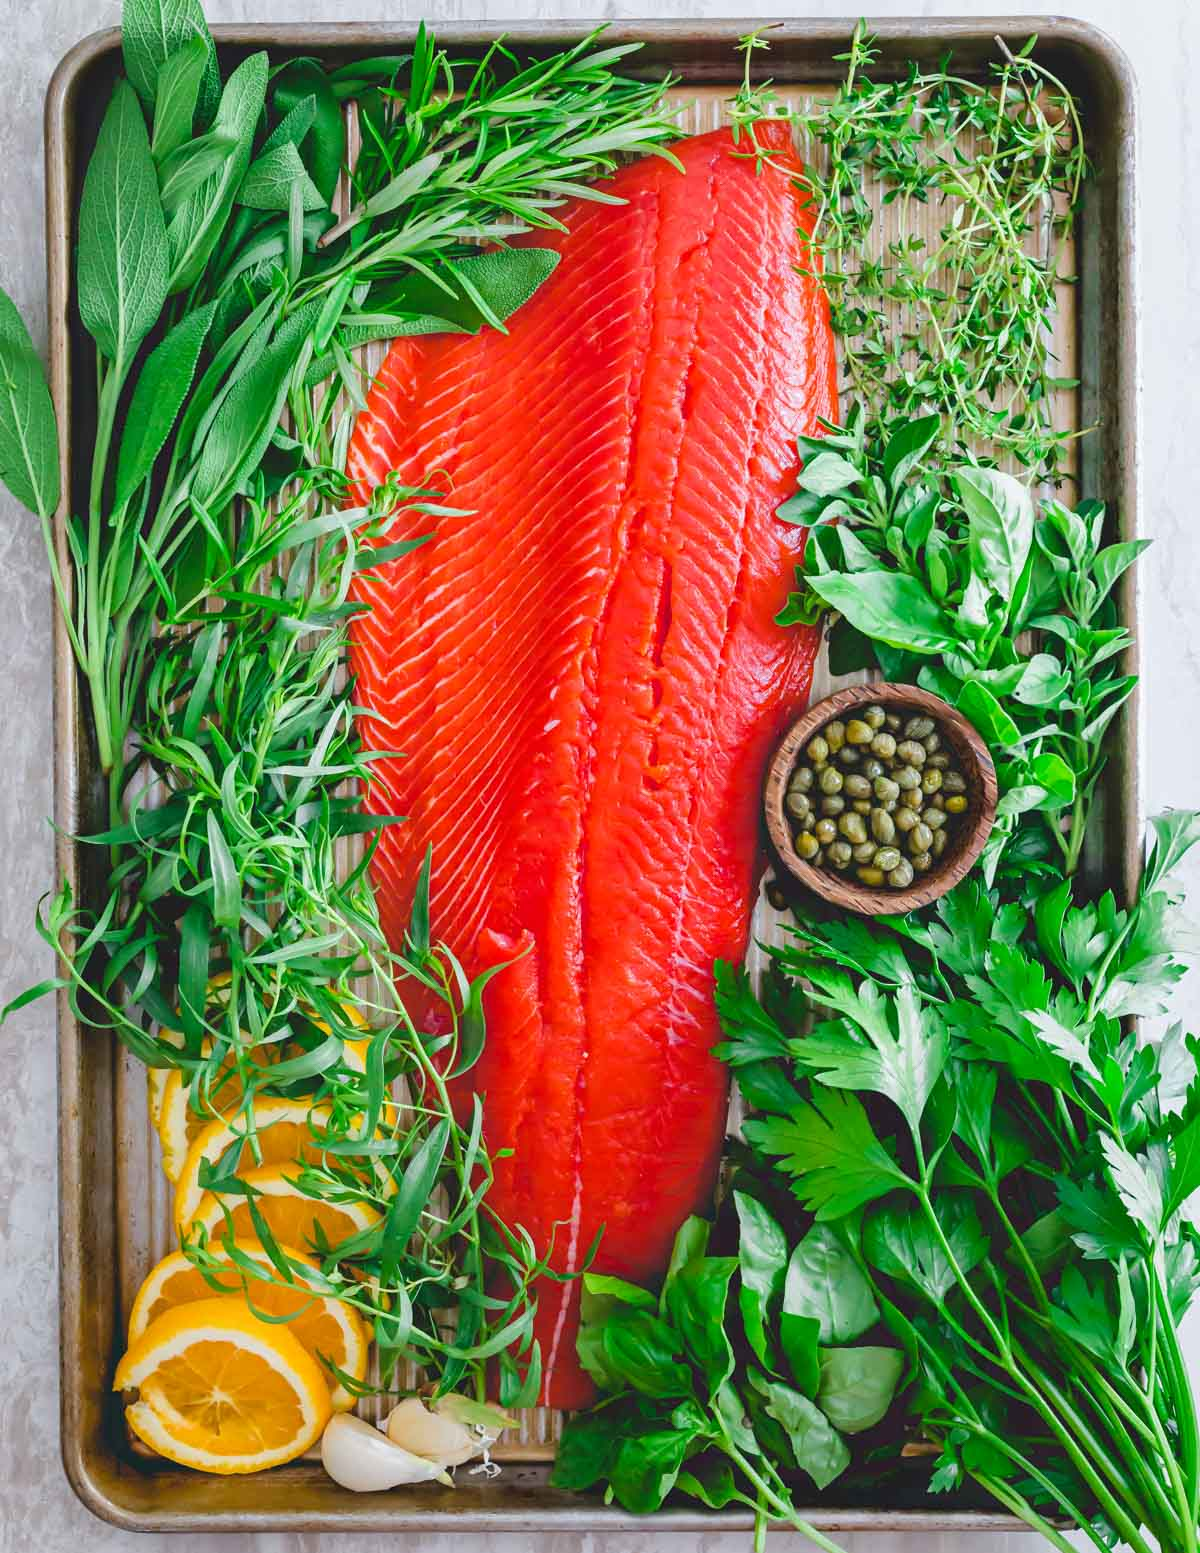 Raw wild sockeye salmon from Alaska with fresh herbs, garlic, capers and orange slices on a baking sheet.